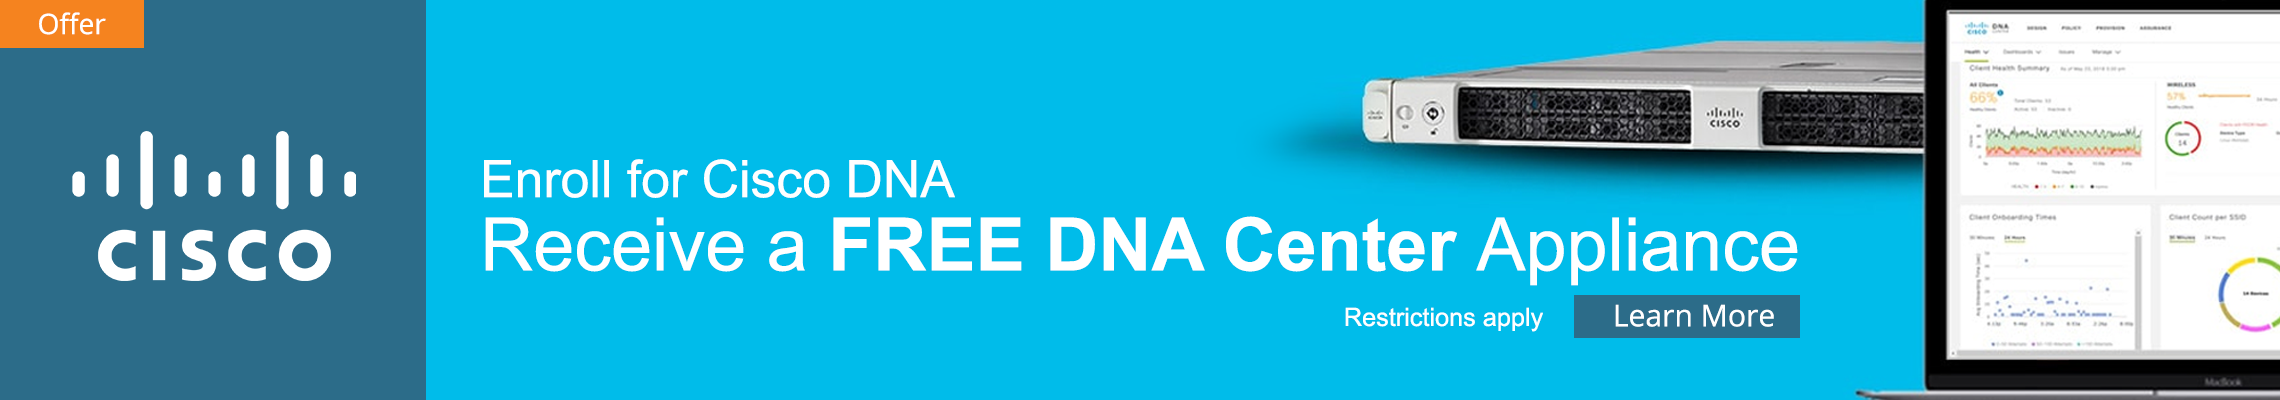 Cisco DNA Enrollment Promo Home Banner